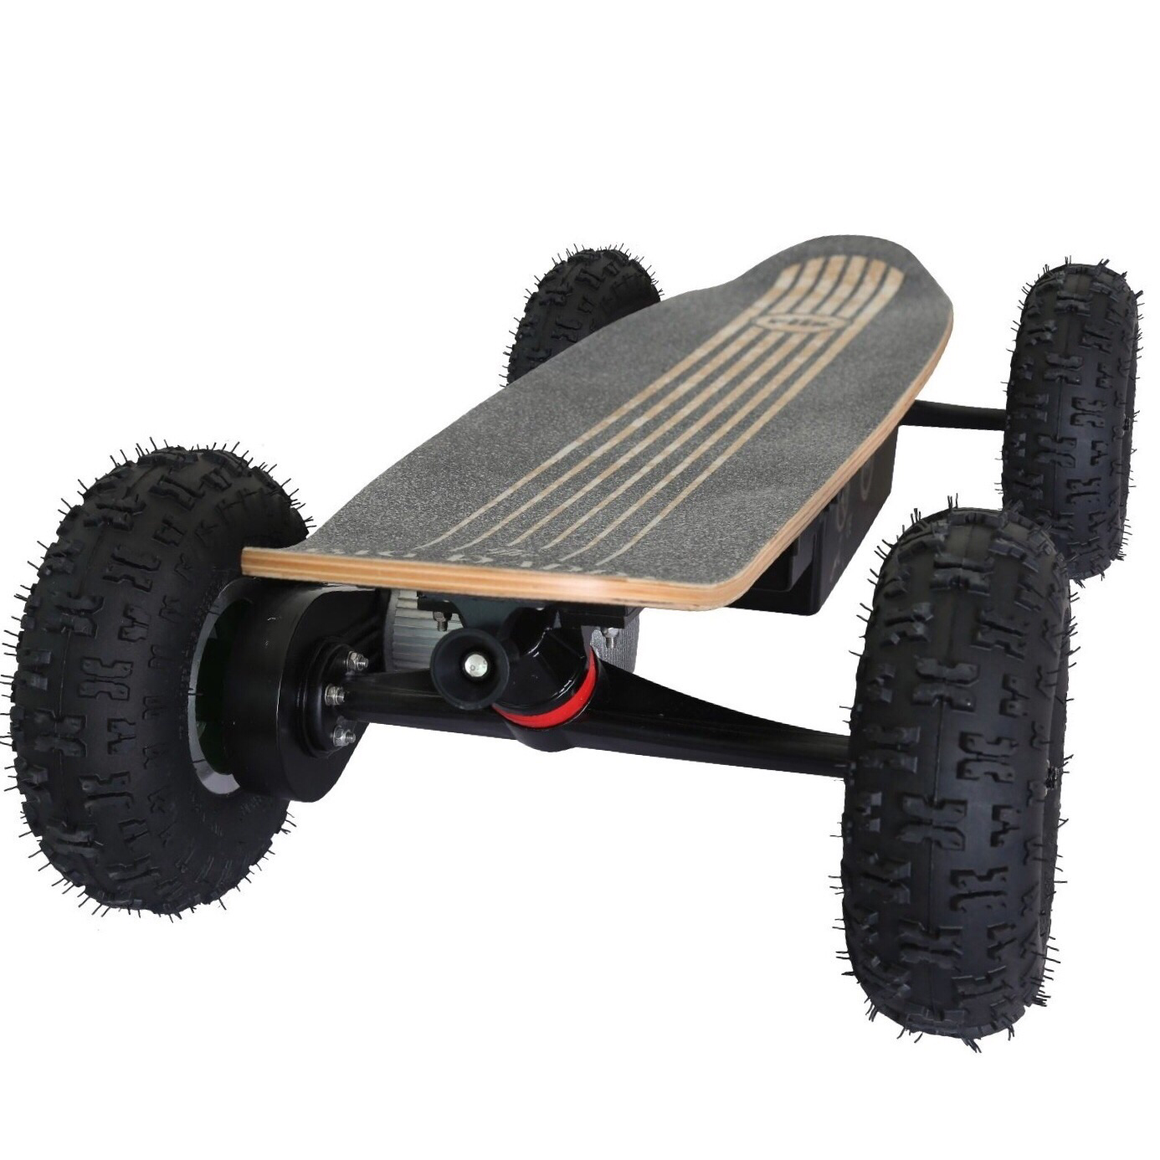 FiiK Big Daddy OffRoad Electric Skateboard Beast  ElectricSkateHQ  Electric Skate HQ